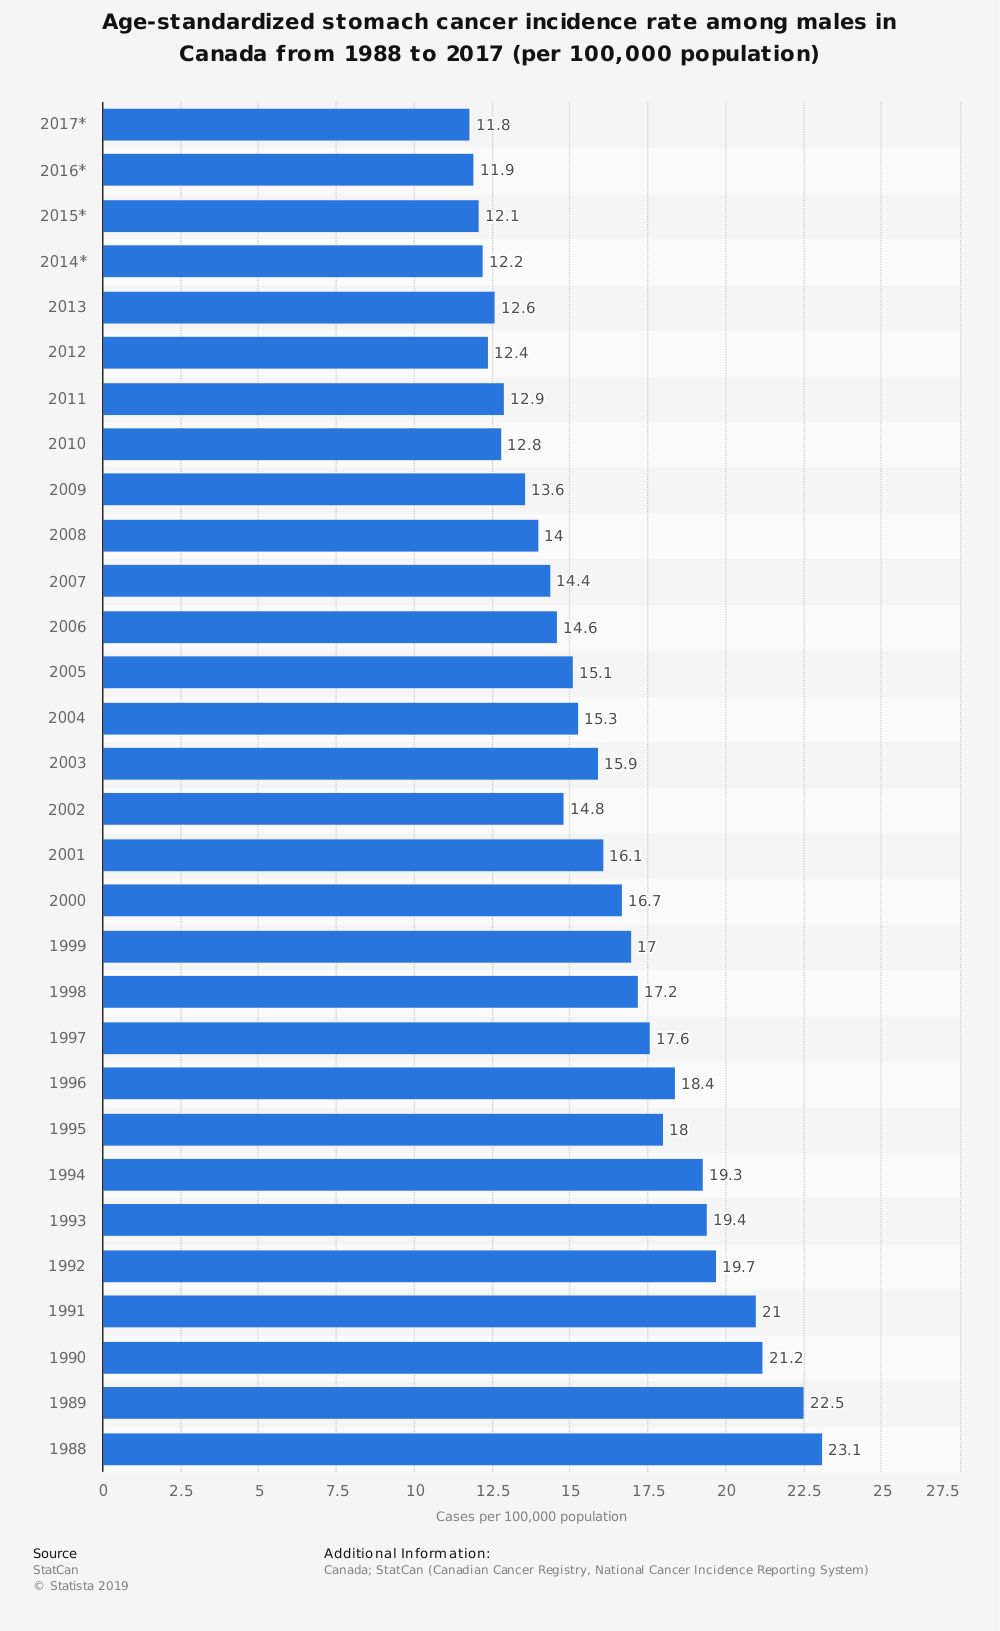 Statistic: Age-standardized stomach cancer incidence rate among males in Canada from 1988 to 2017 (per 100,000 population) | Statista